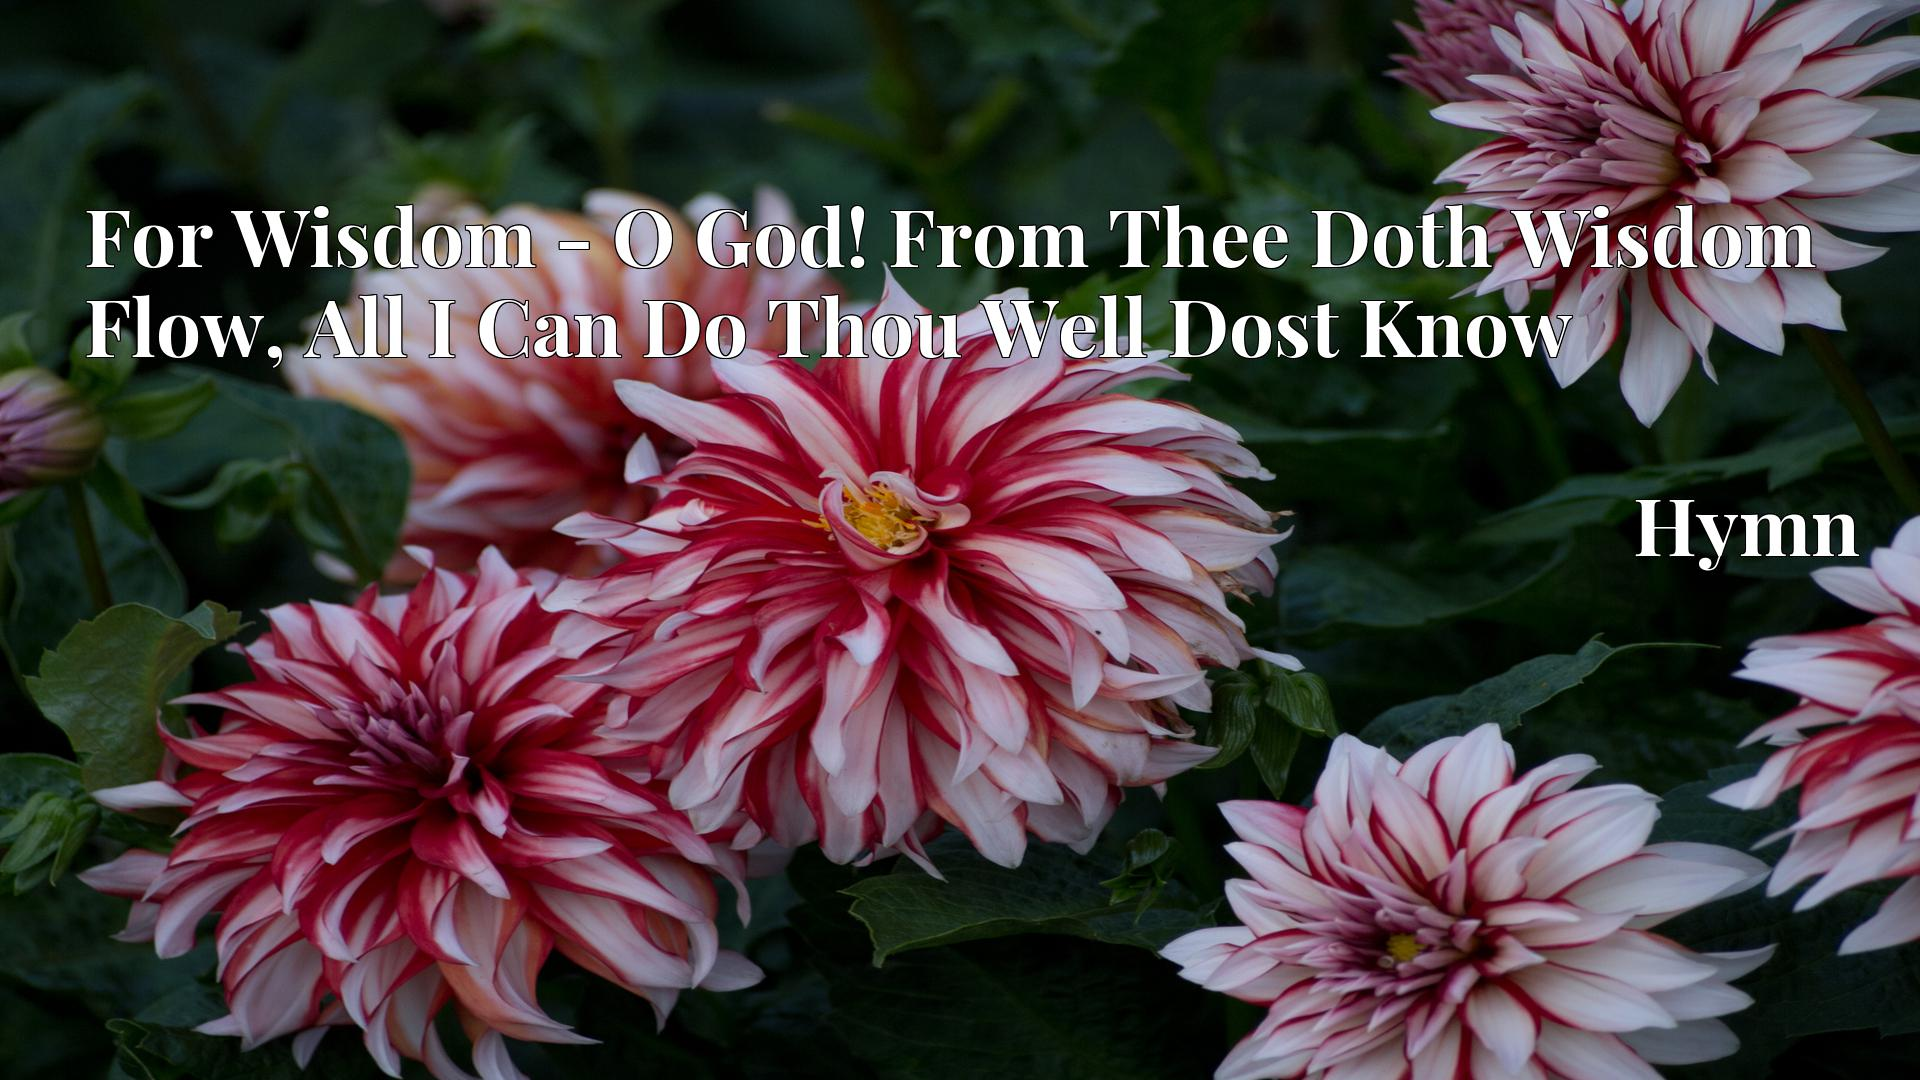 For Wisdom - O God! From Thee Doth Wisdom Flow, All I Can Do Thou Well Dost Know - Hymn